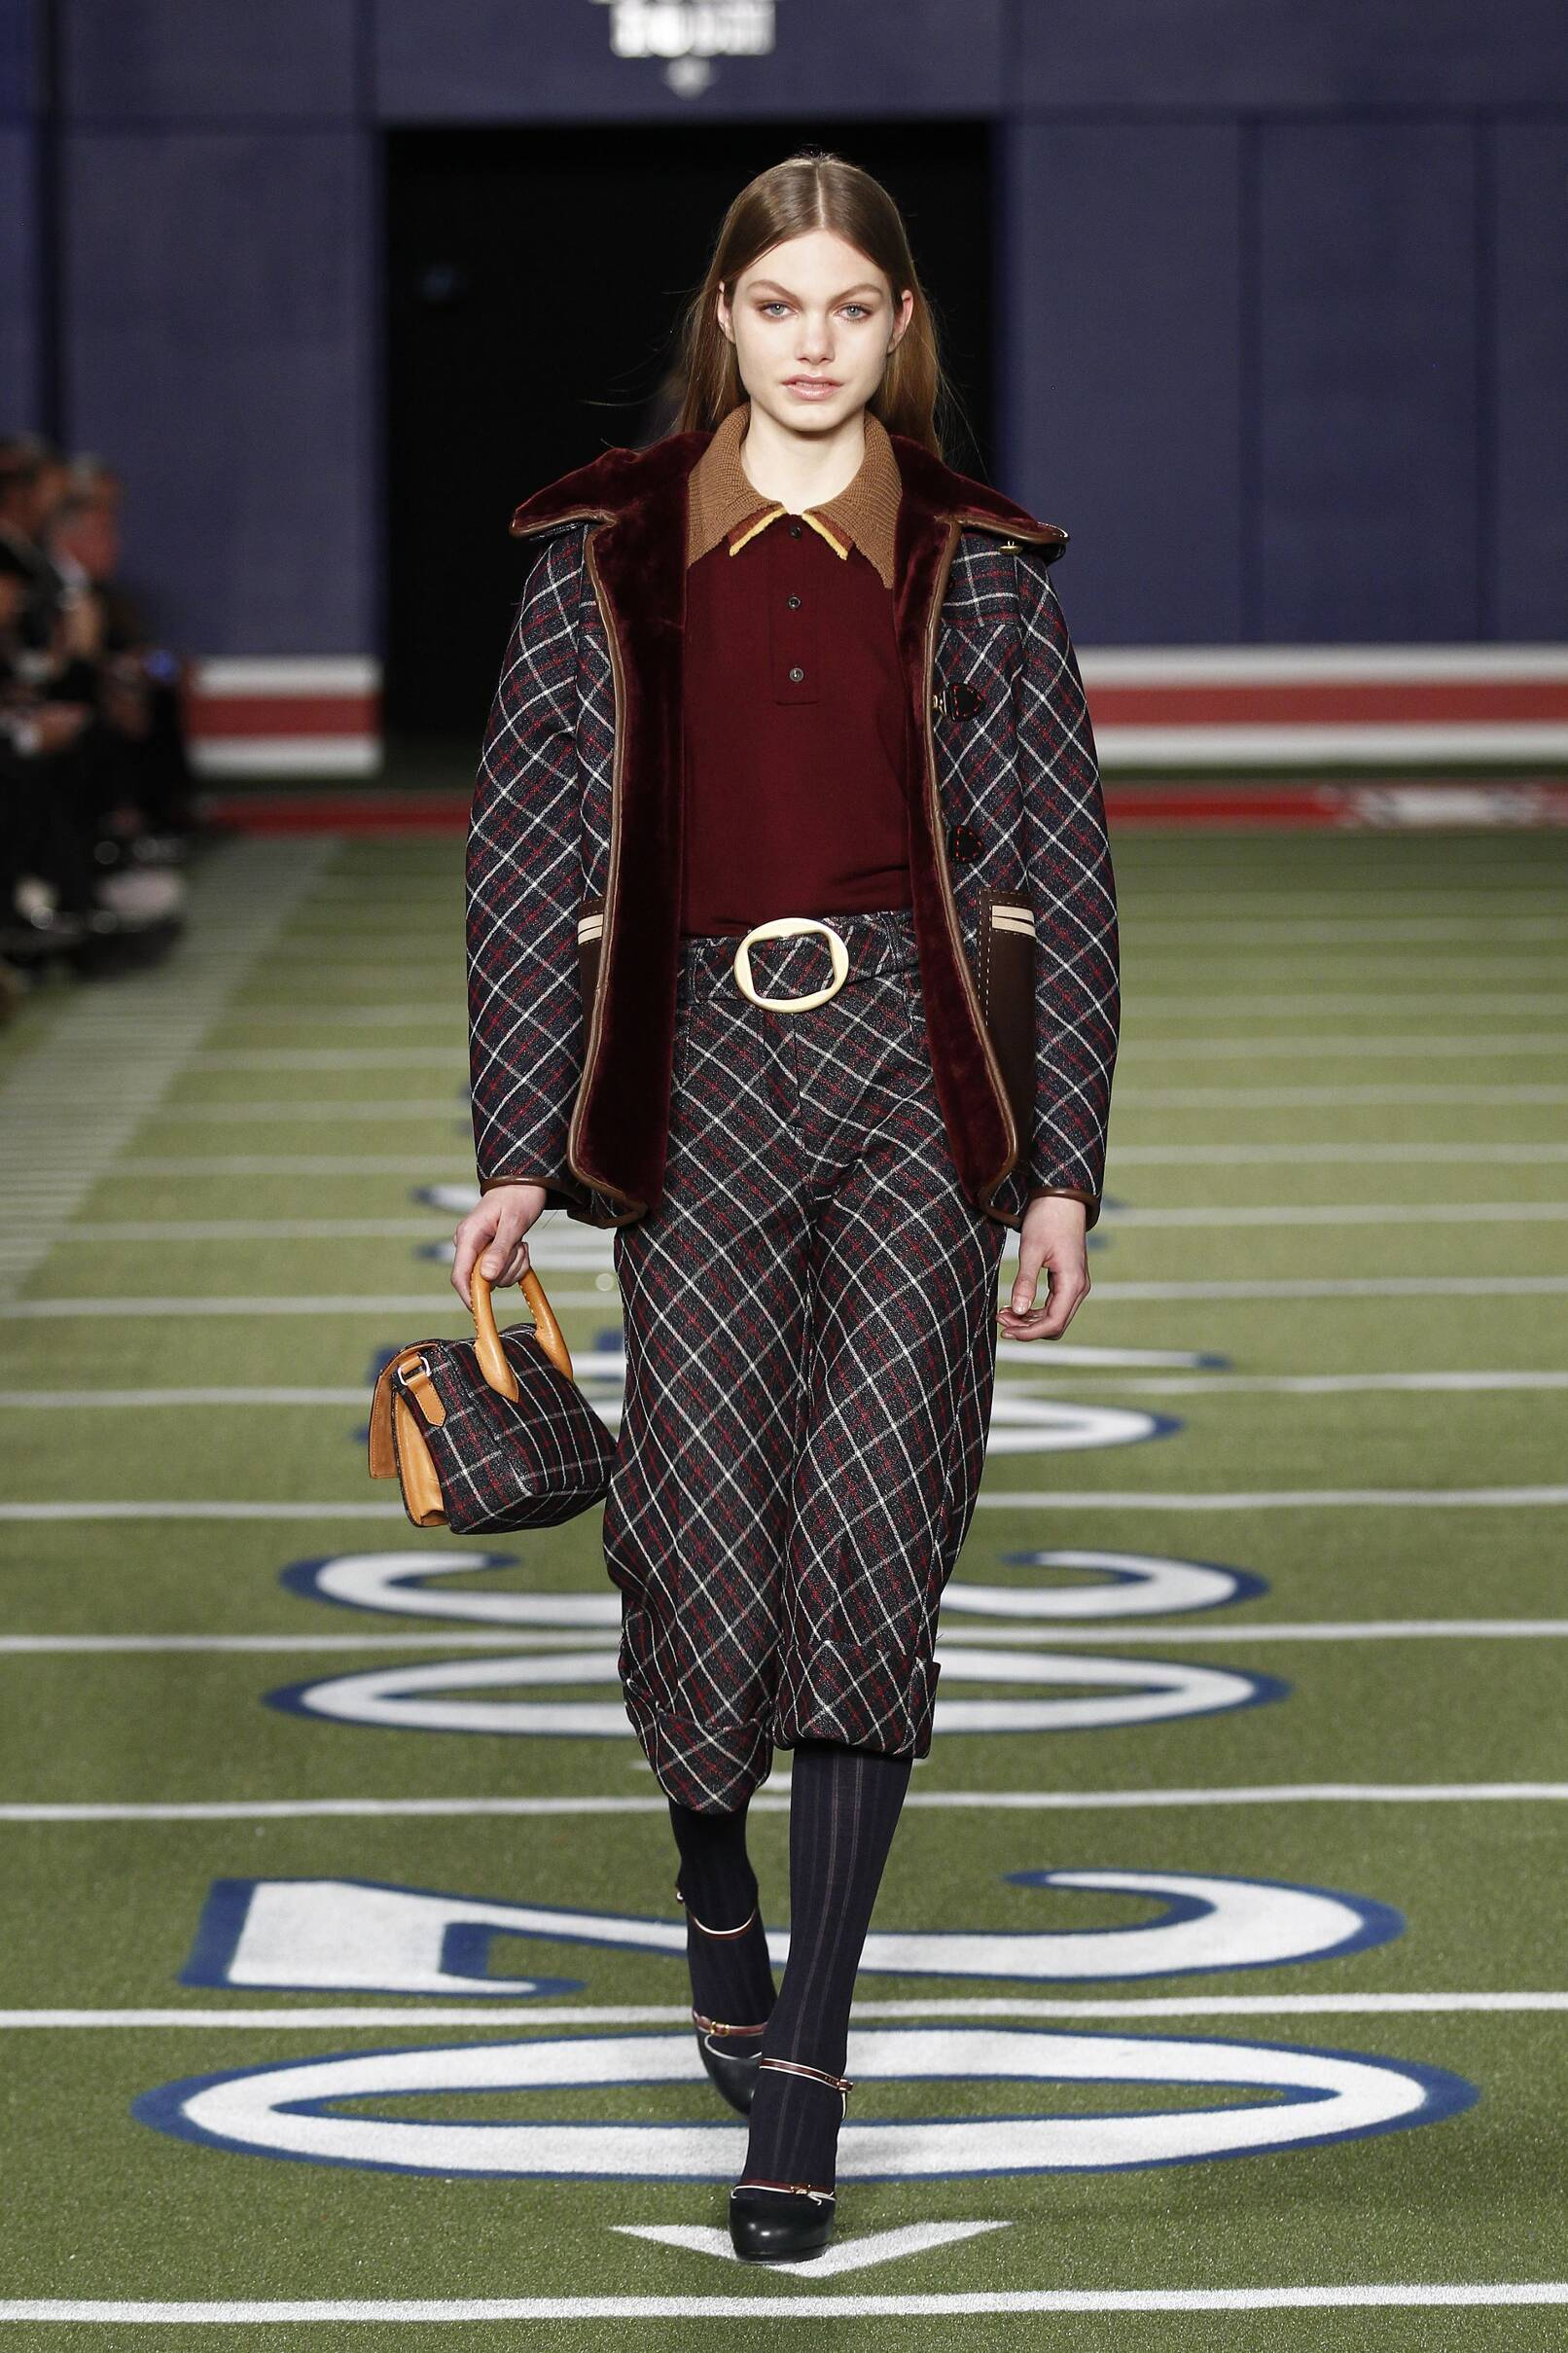 Tommy Hilfiger Fall Winter 2015 16 Women's Collection New York Fashion Week